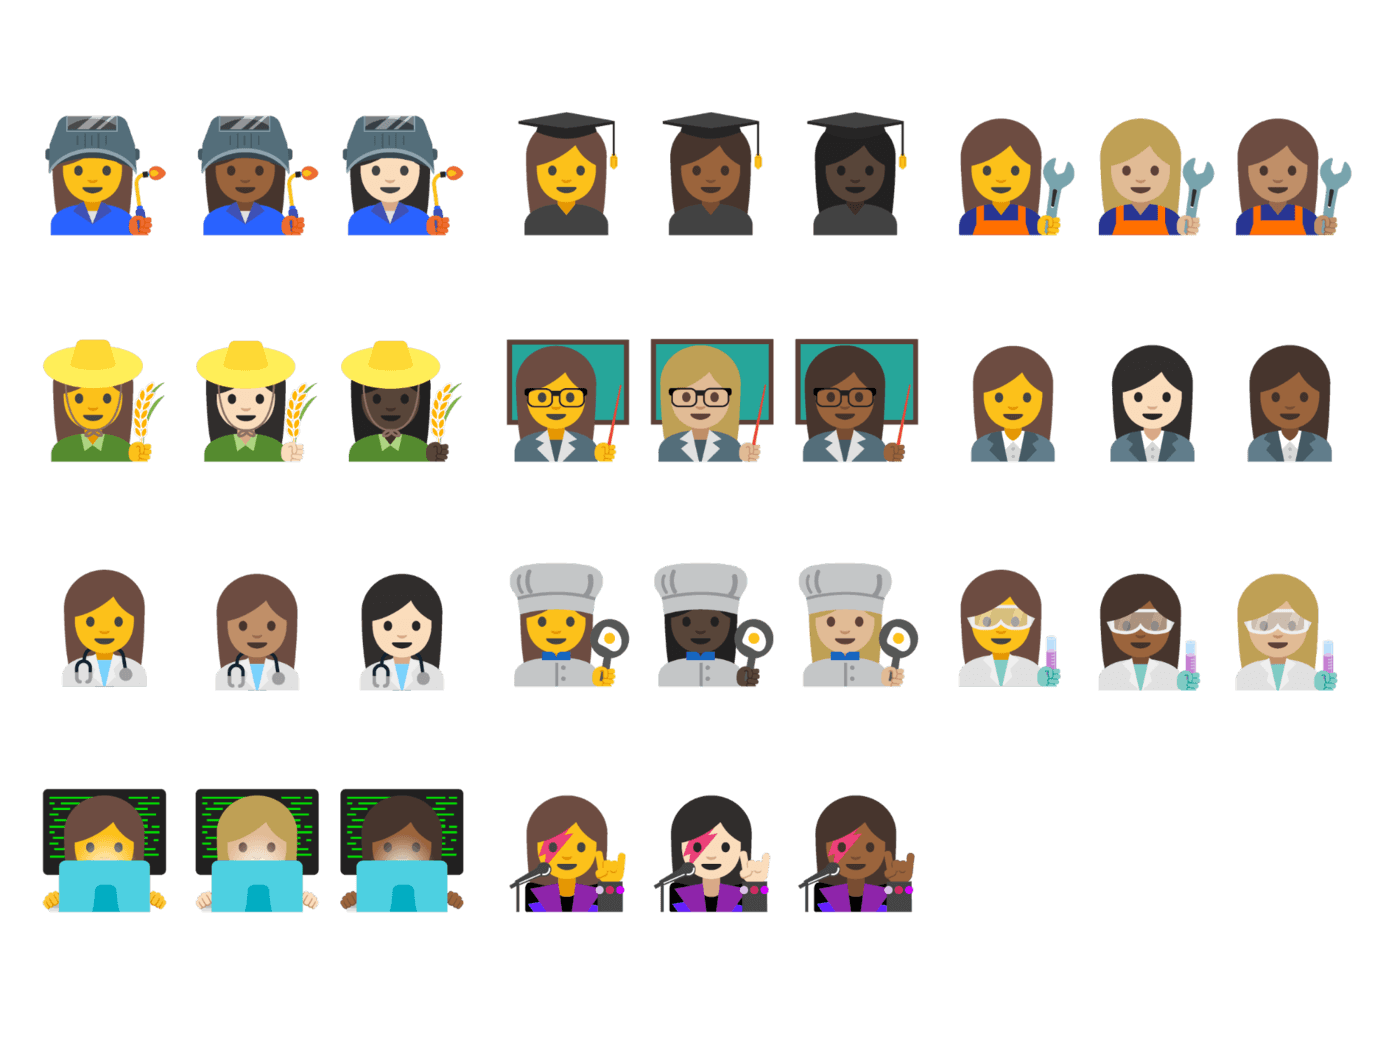 New emojis in Android 7.1.1 Nougat.